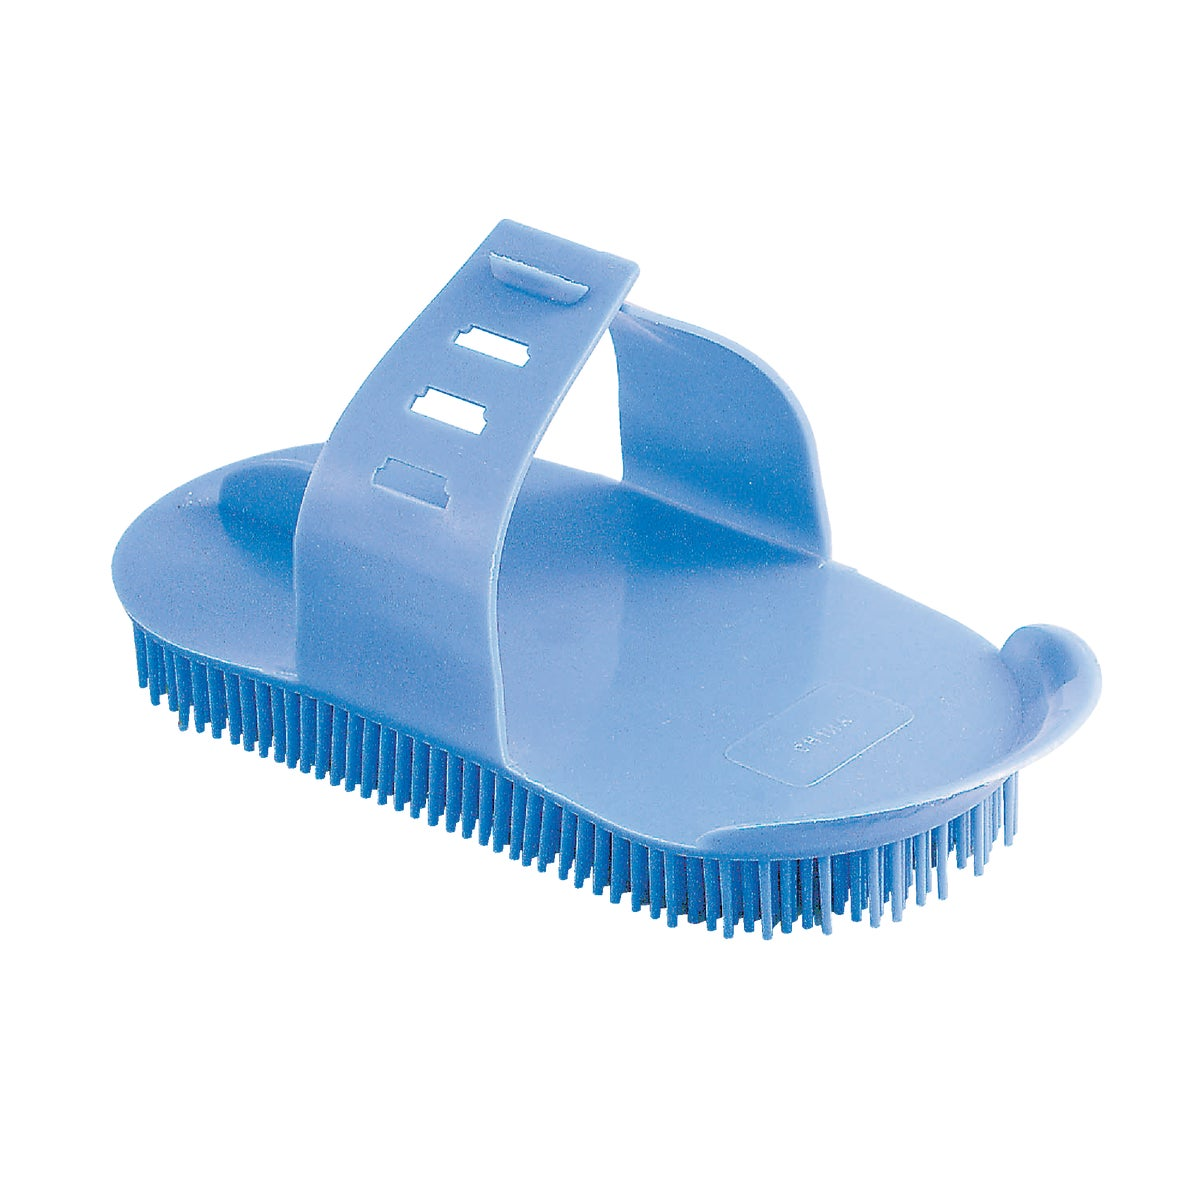 MASSAGE CURRY COMB - 89 by Decker Manufacturing